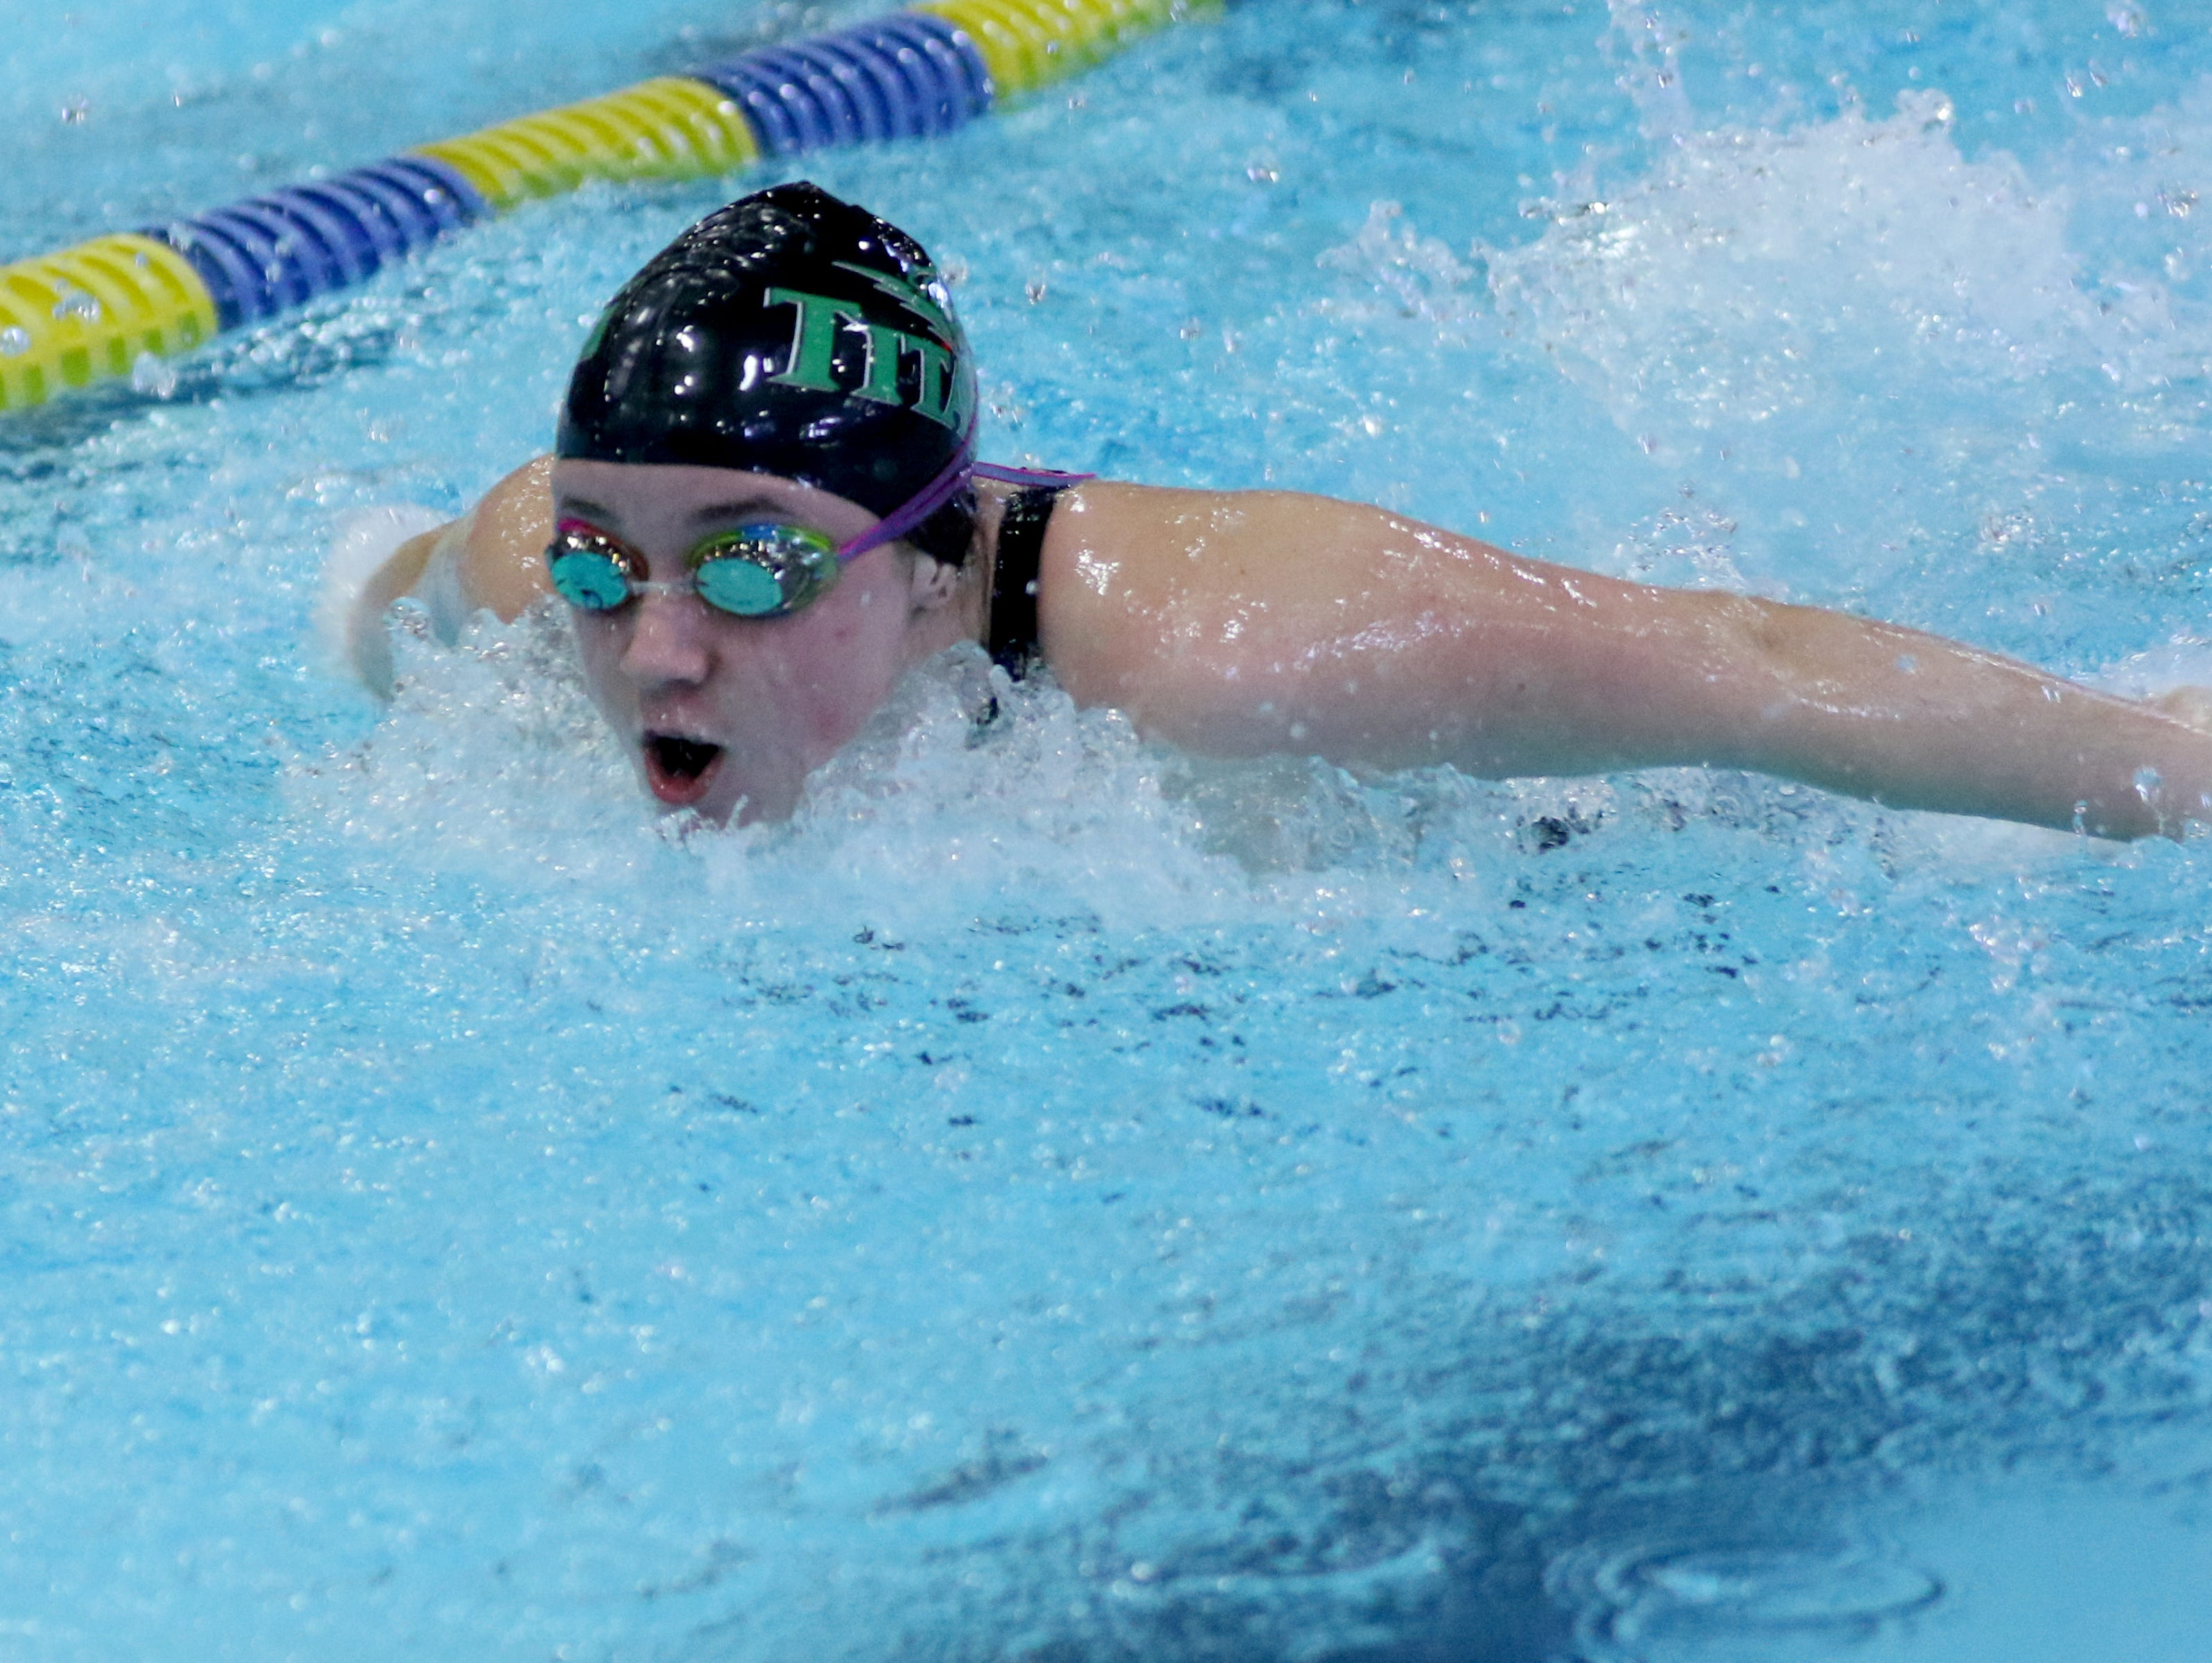 West Salem's Alaina Otterstrom competes in the 100 yard butterfly during the Greater Valley Conference swimming championships at the McMinnville Aquatic Center on Saturday, Feb. 11, 2017.